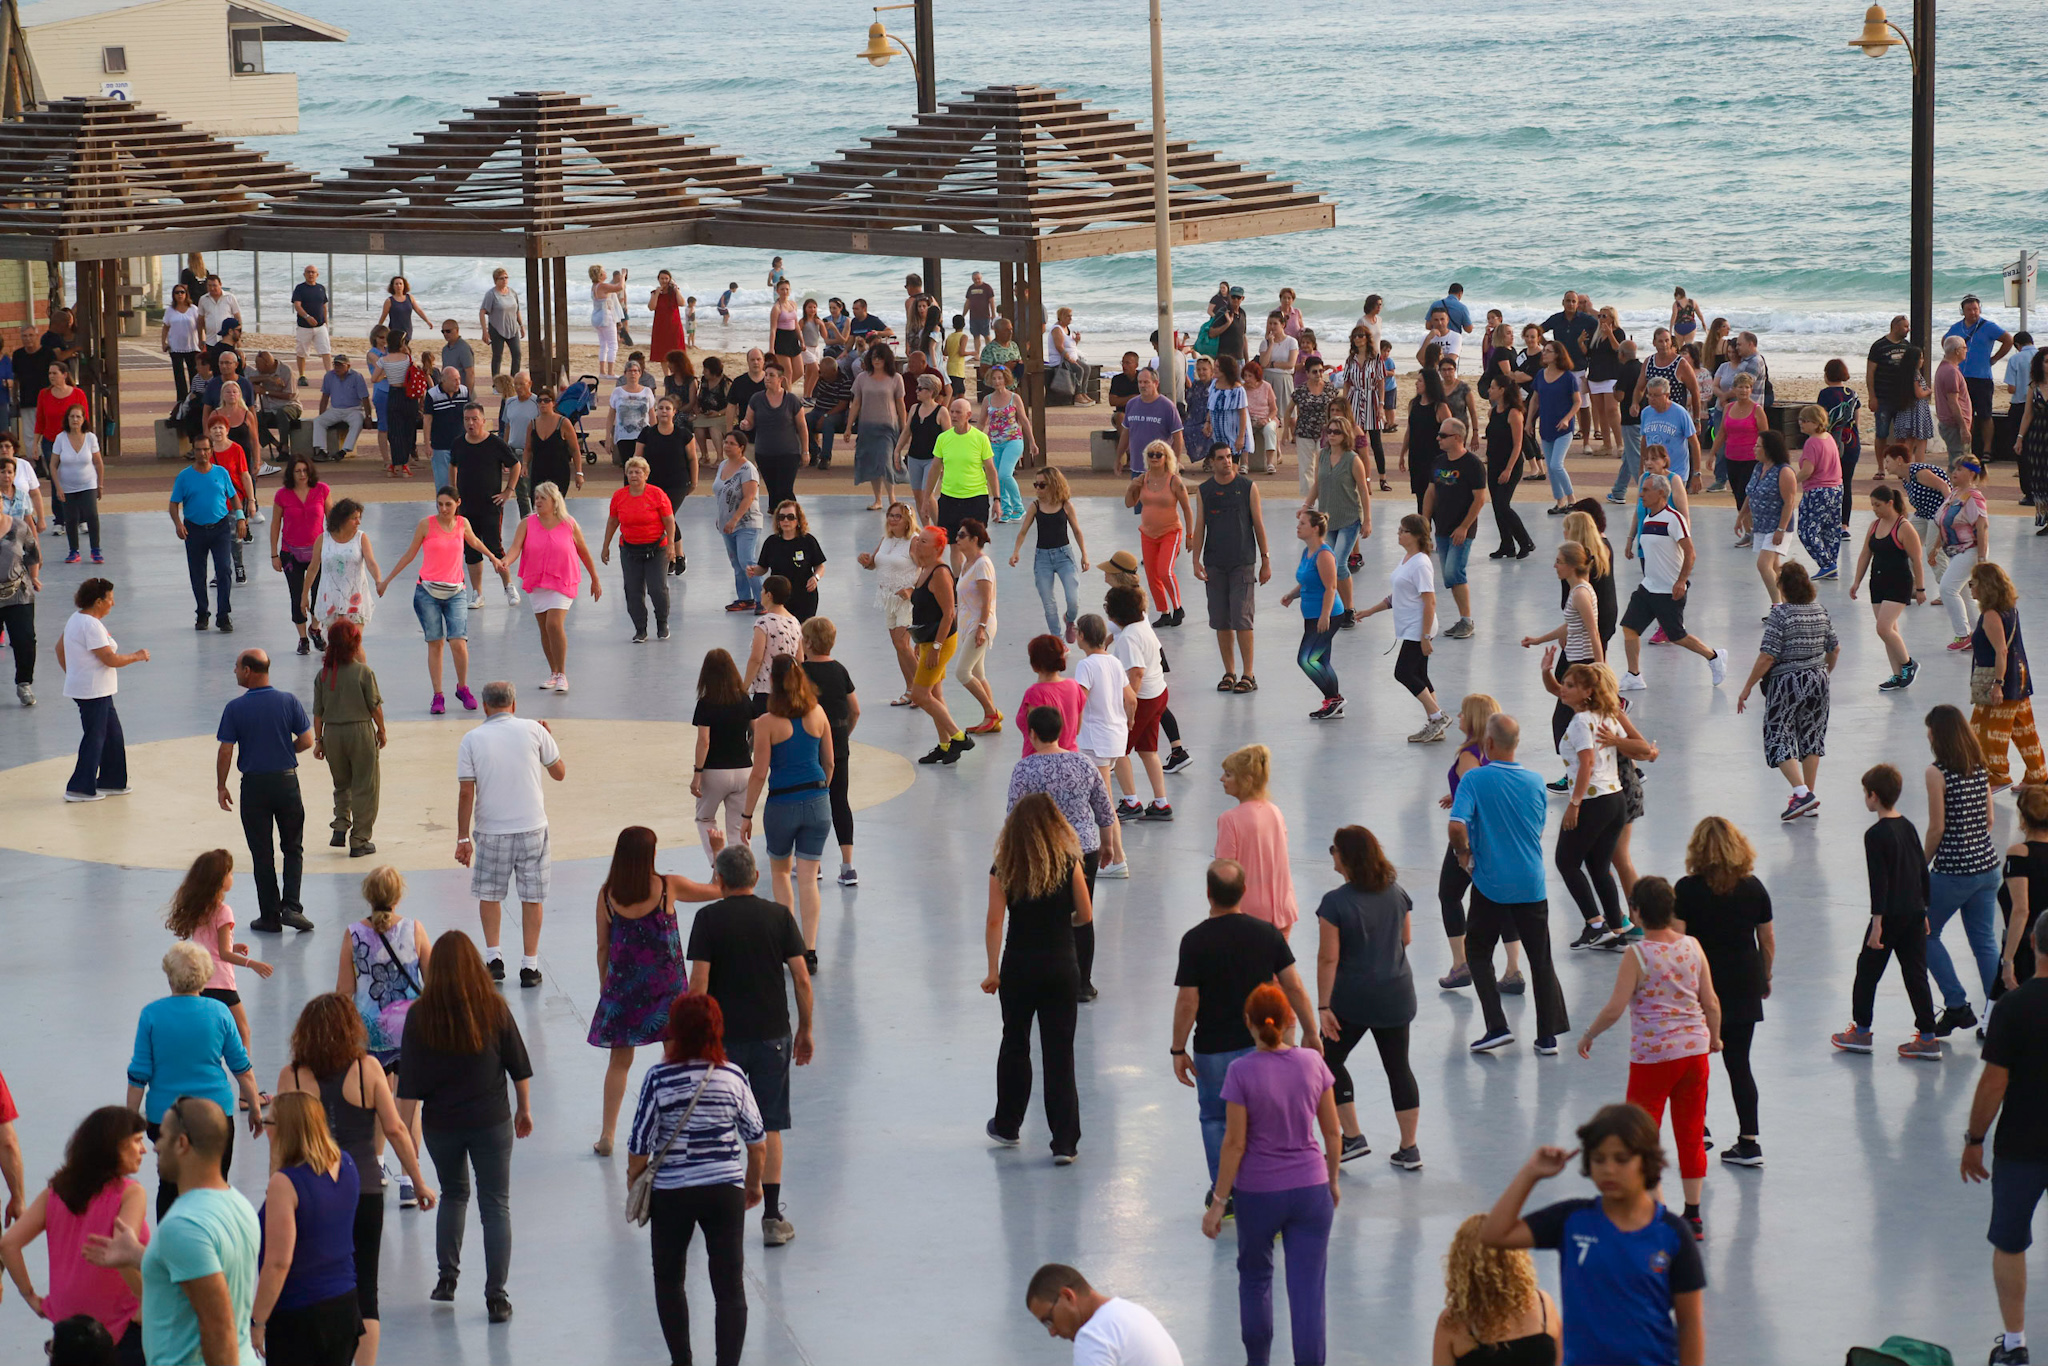 Large-scale mass dancing in a public square becomes increasingly popular